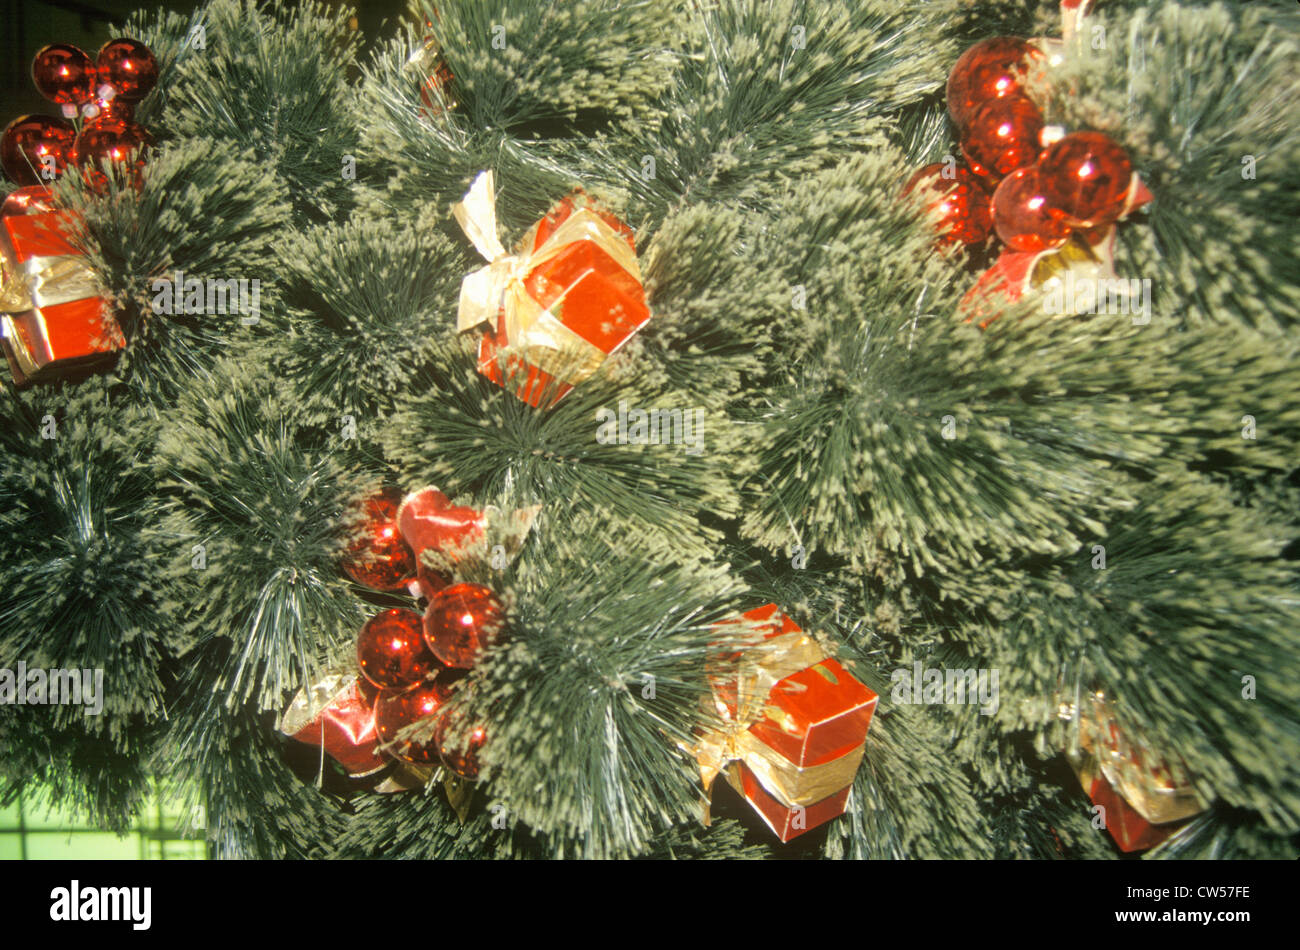 christmas decorations on tree marshall fields department store chicago illinois stock image - Christmas Decoration Stores Chicago